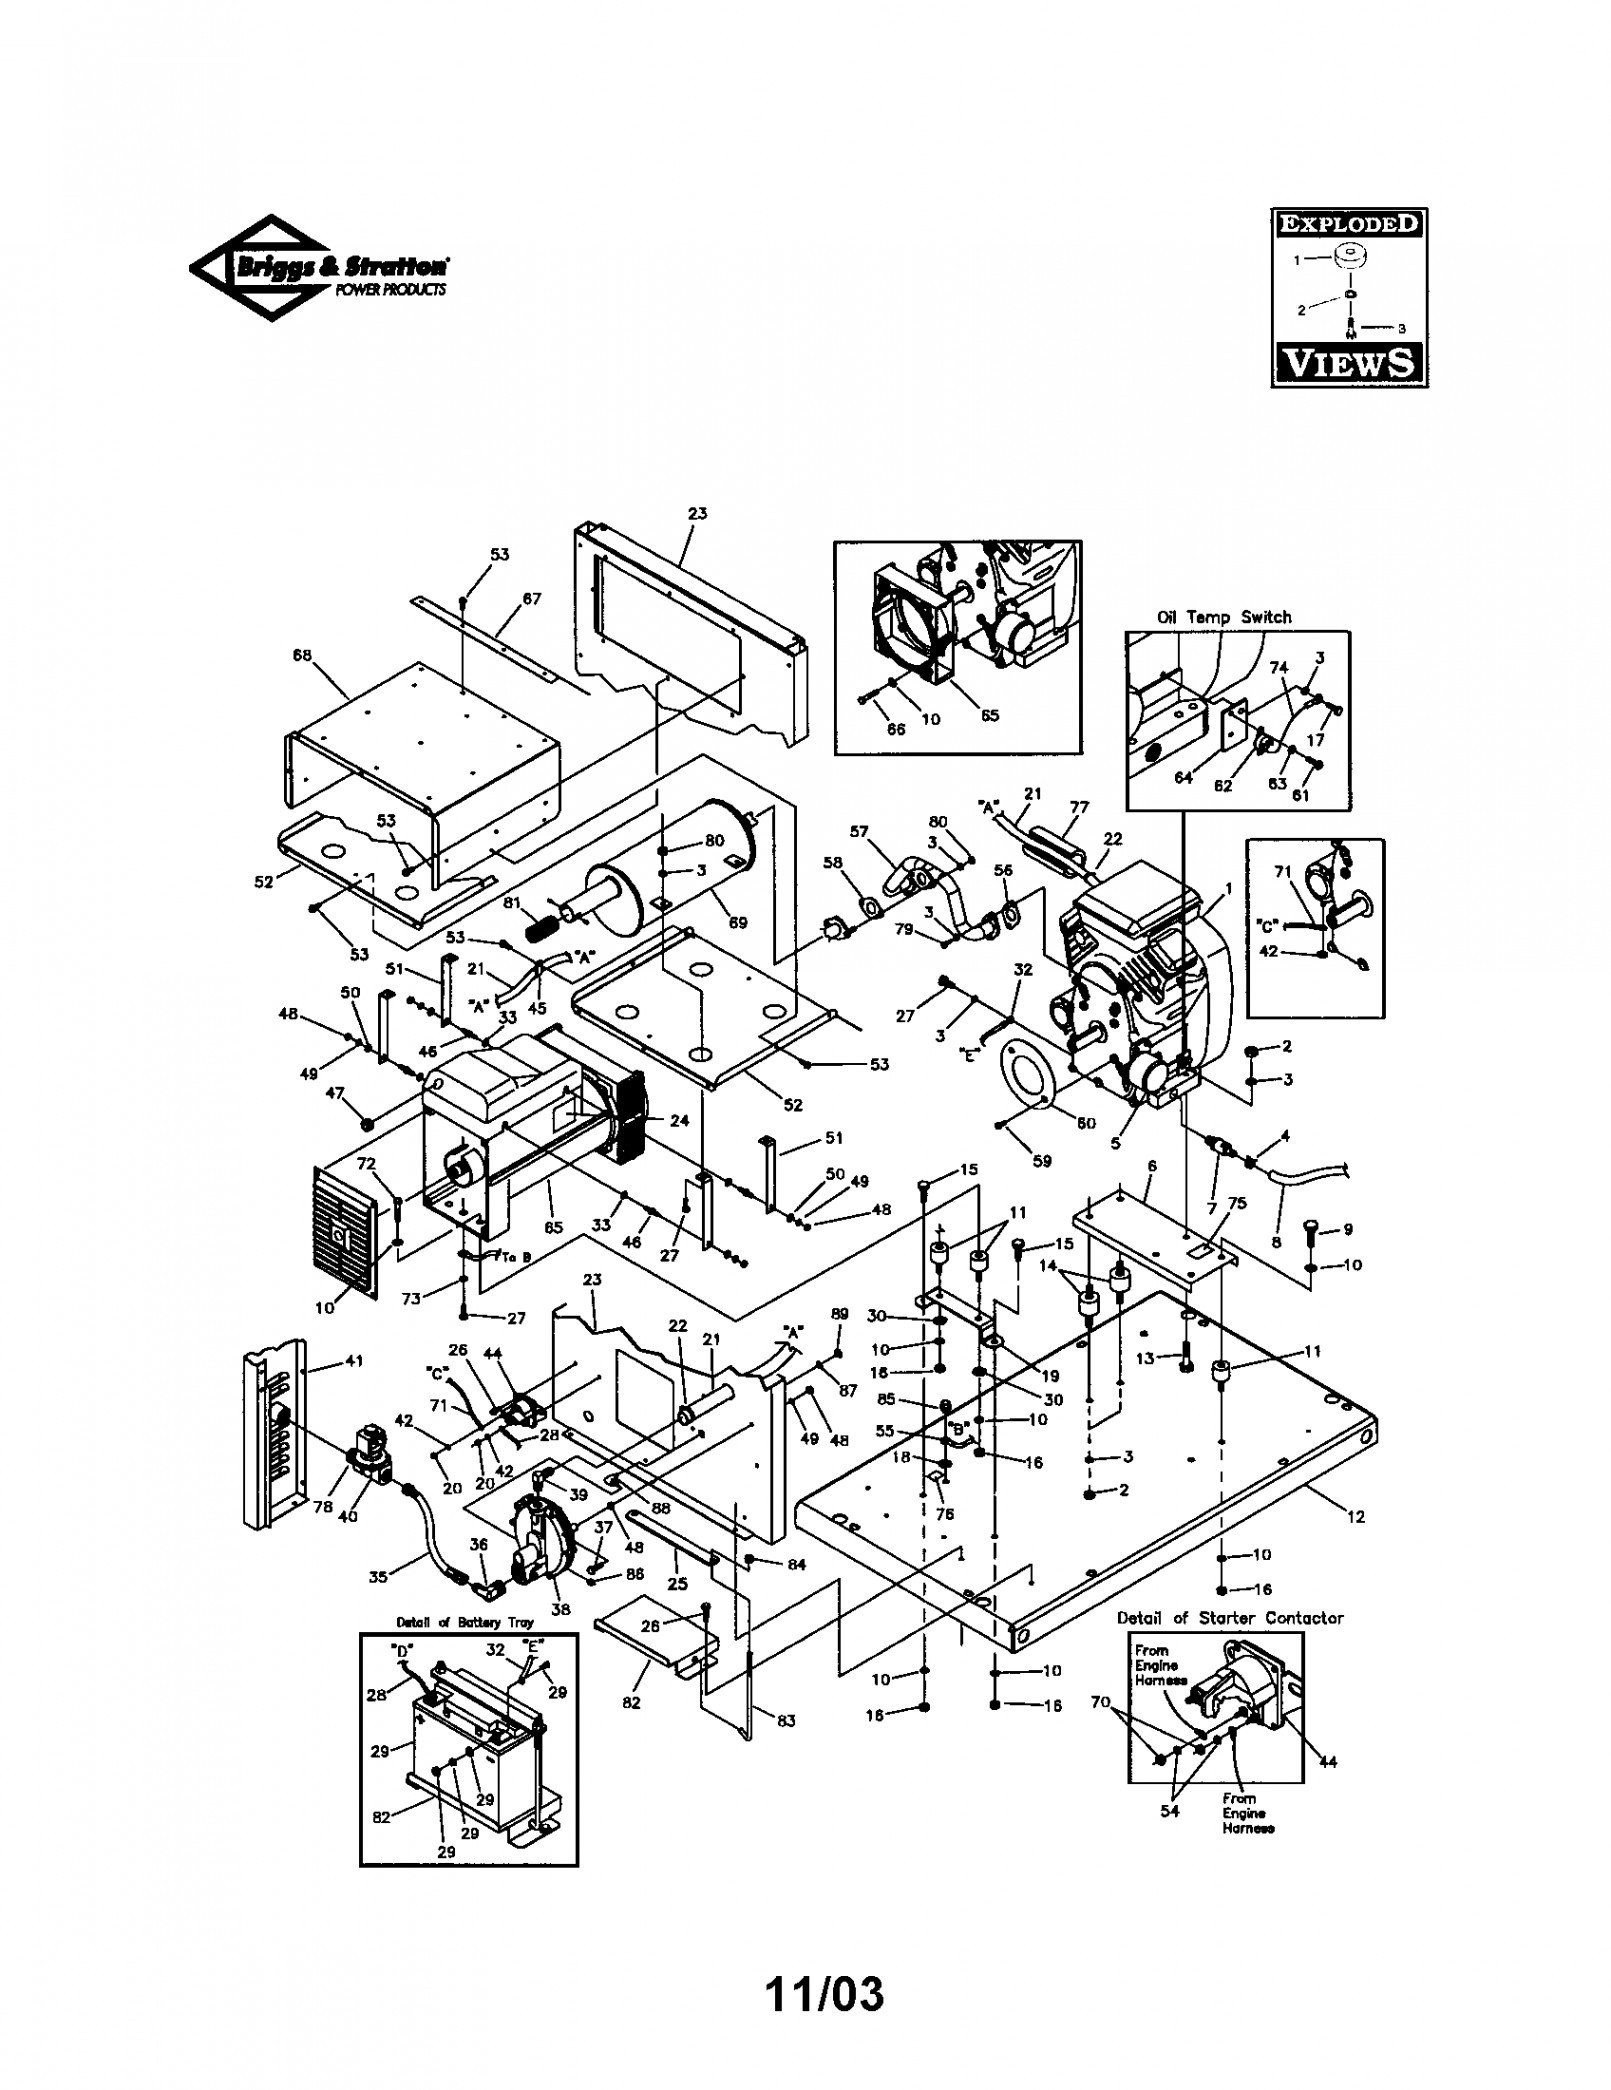 Briggs and Stratton Lawn Mower Parts Diagram Briggs Stratton Engine Parts Diagram – Briggs and Stratton Parts Of Briggs and Stratton Lawn Mower Parts Diagram Briggs and Stratton Recoil Starter assembly Diagram – Awesome